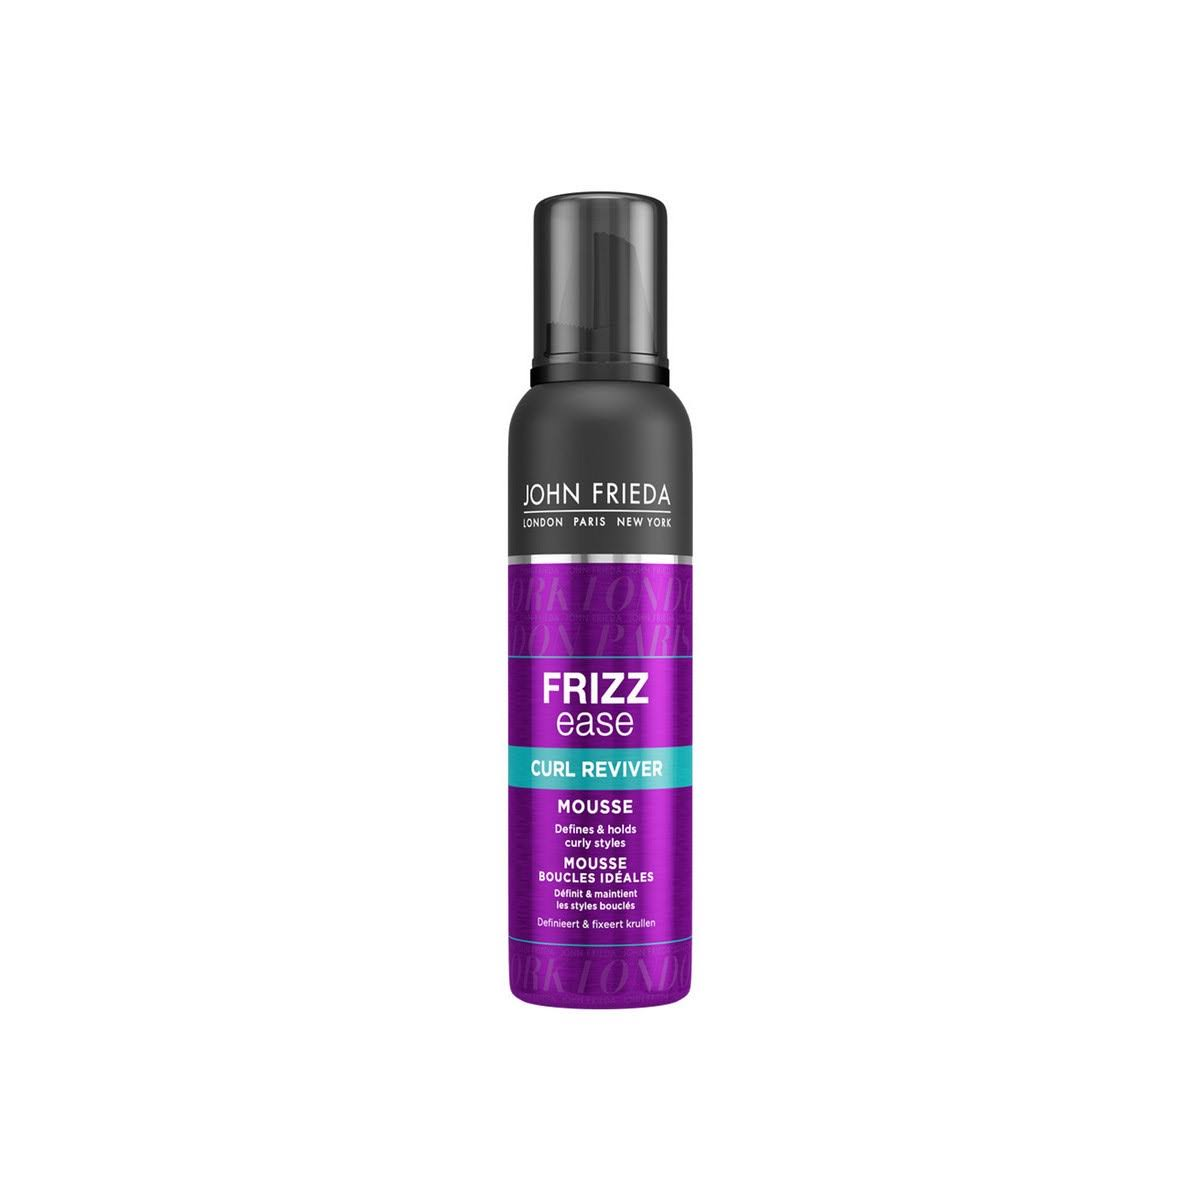 John Frieda Frizz Ease Mousse - Curl Reviver, 200ml